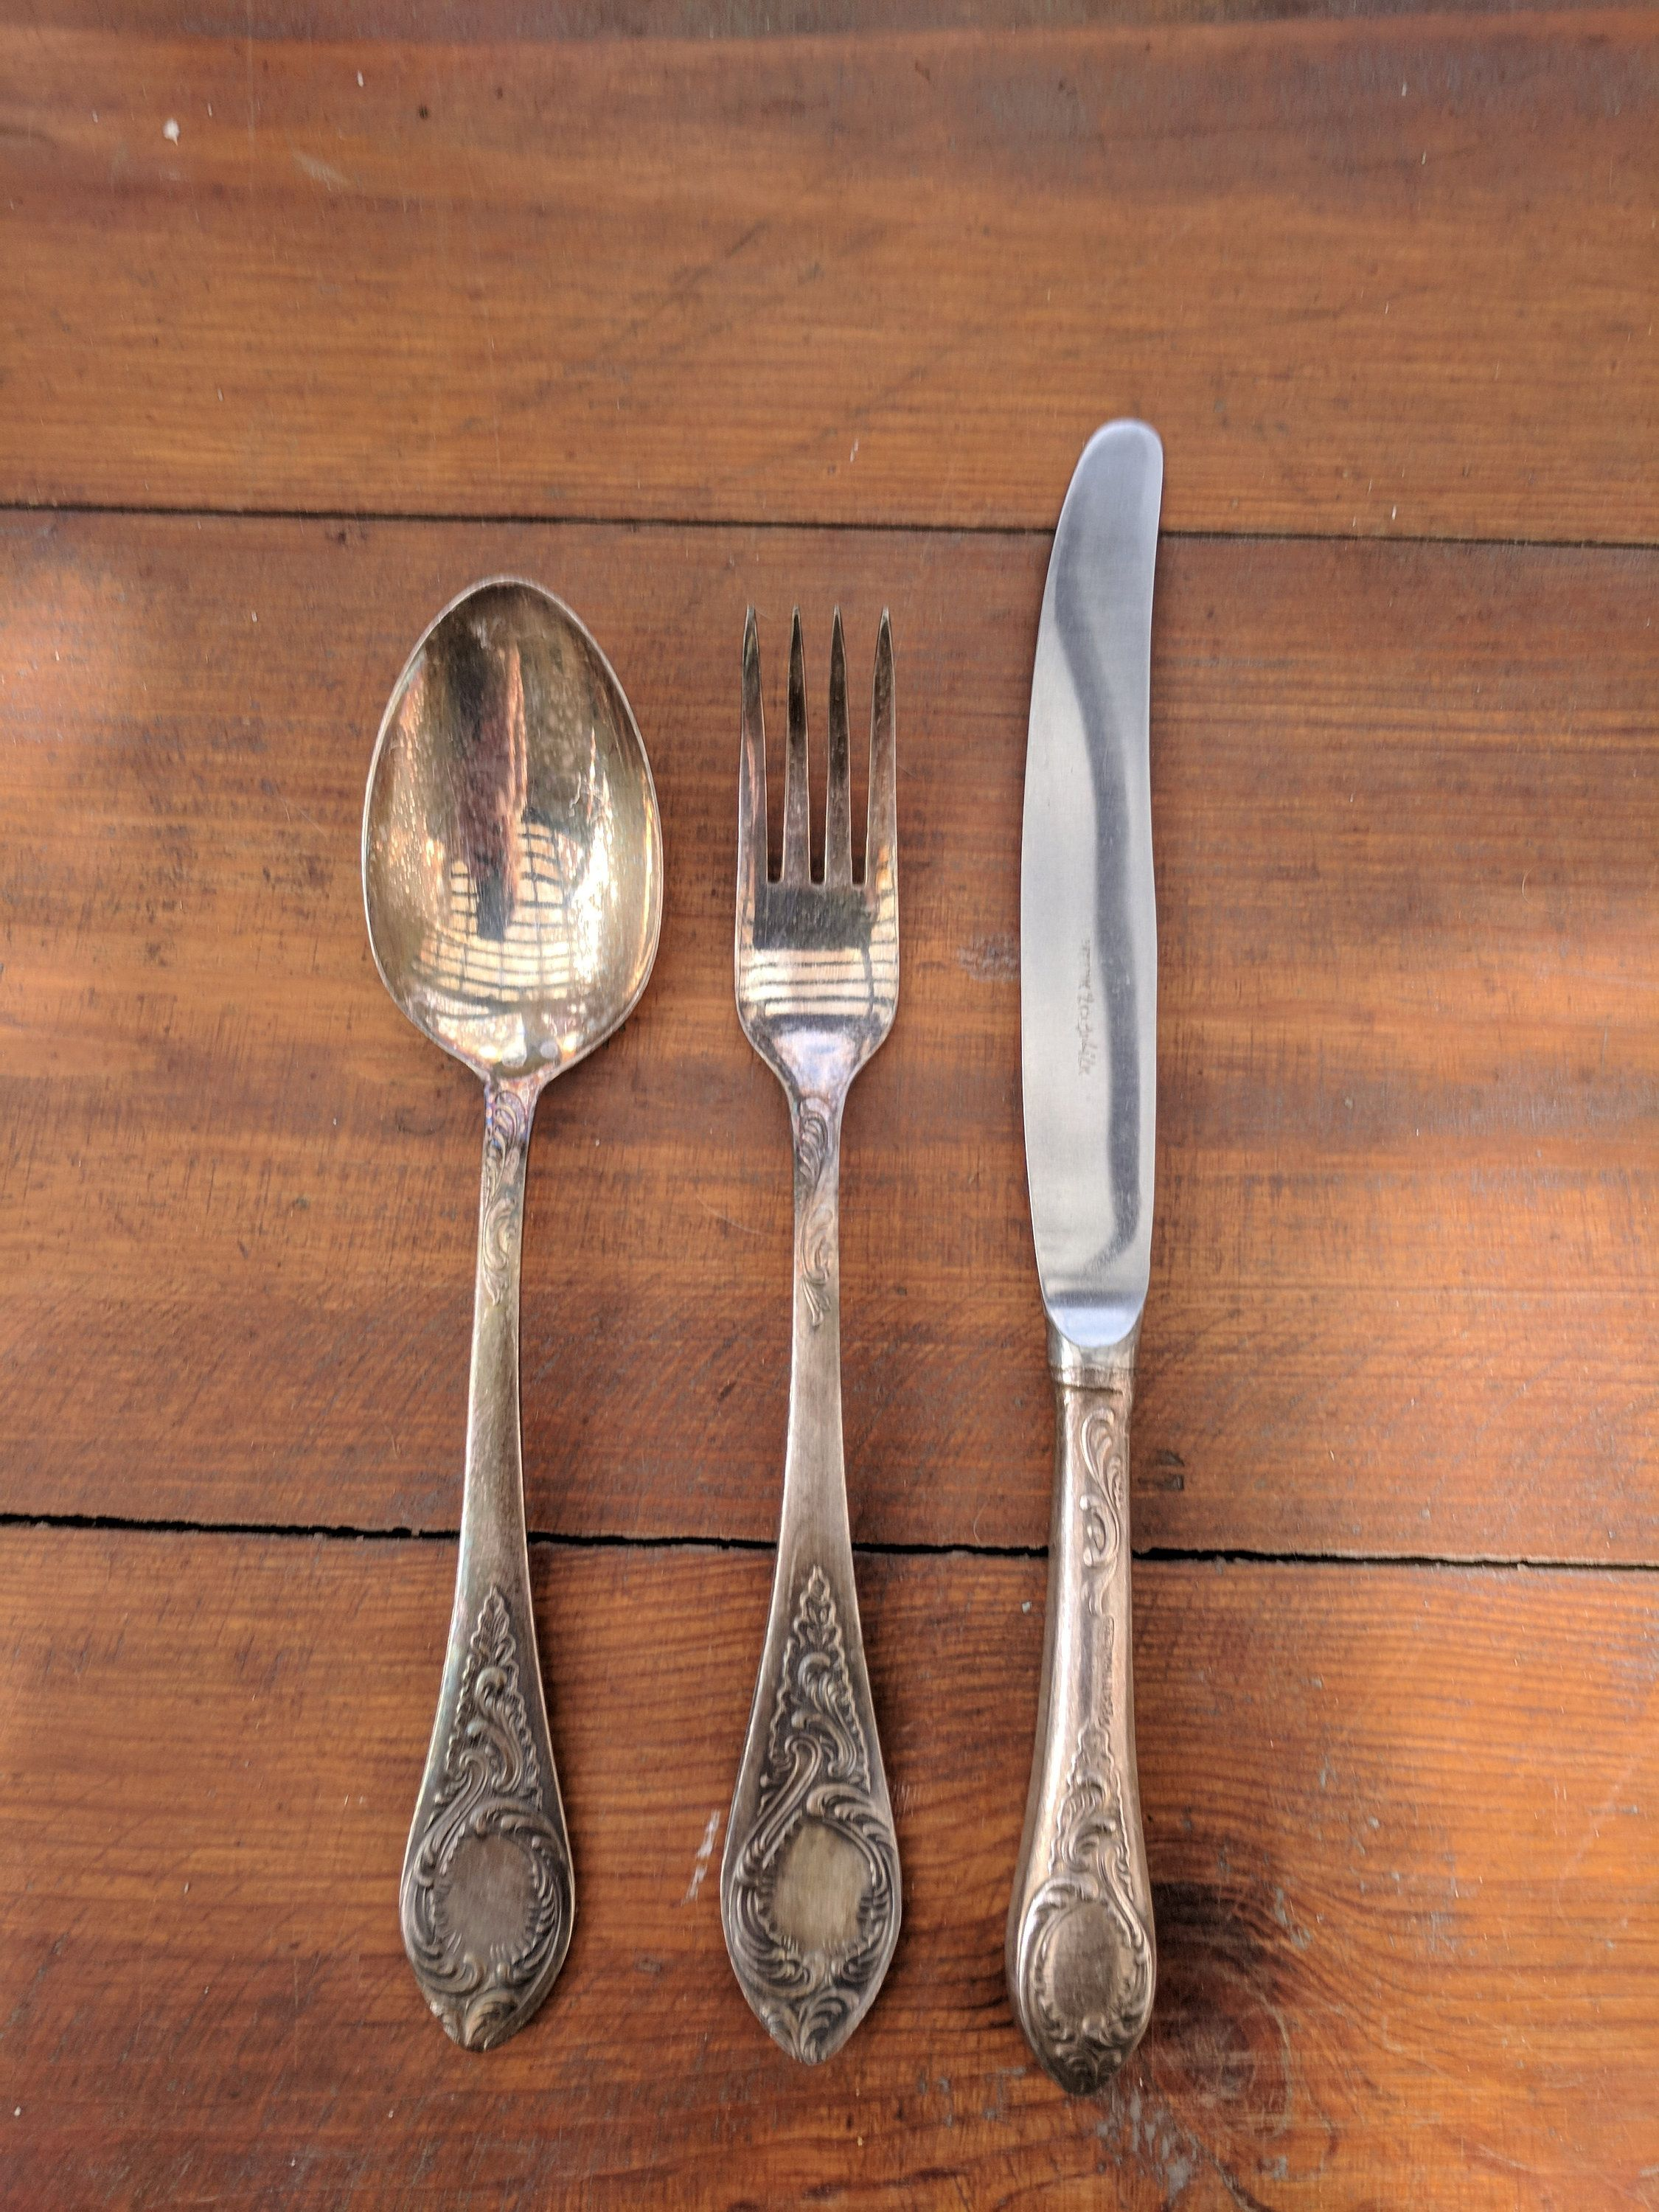 Fork Spoon Knife Set Ornate Place Setting Mid Century